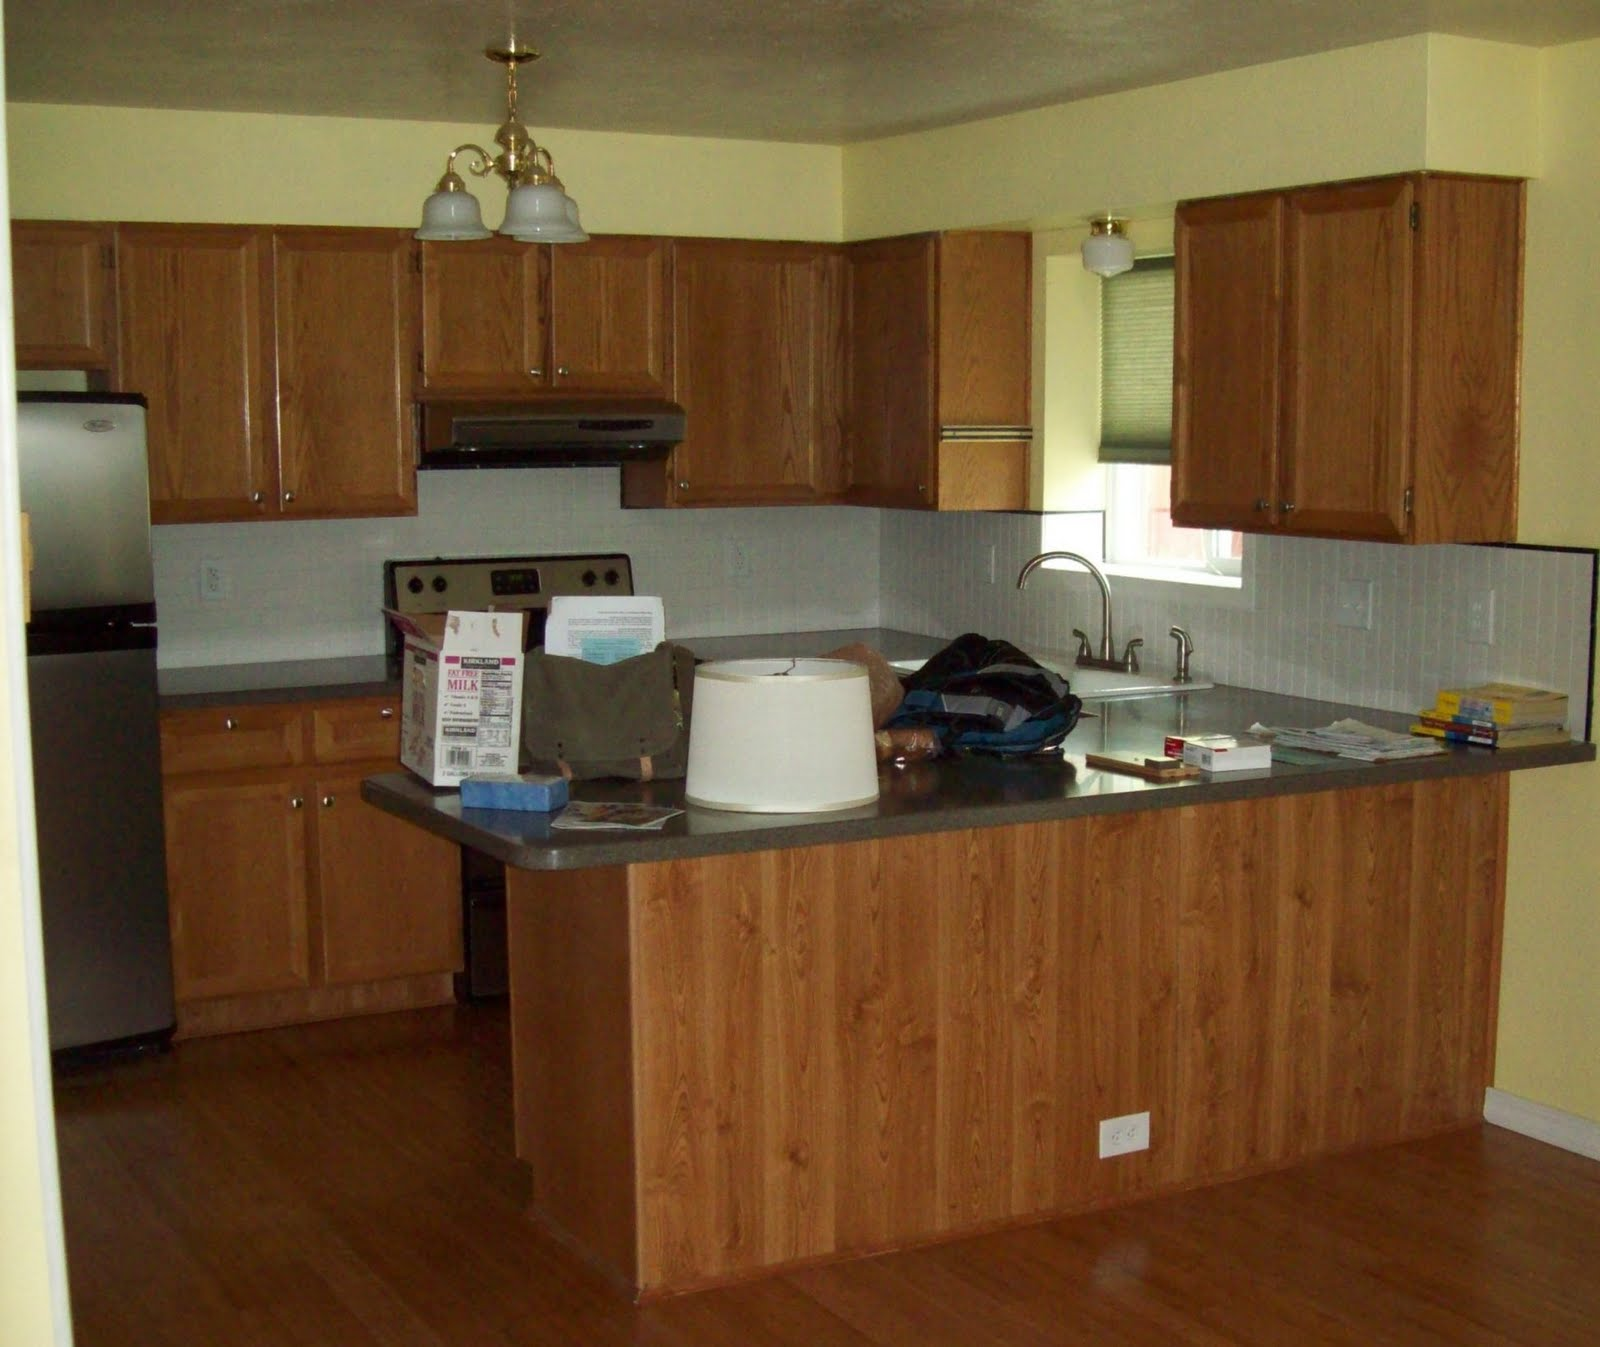 Remodelaholic | How to Paint Your Kitchen Cabinets